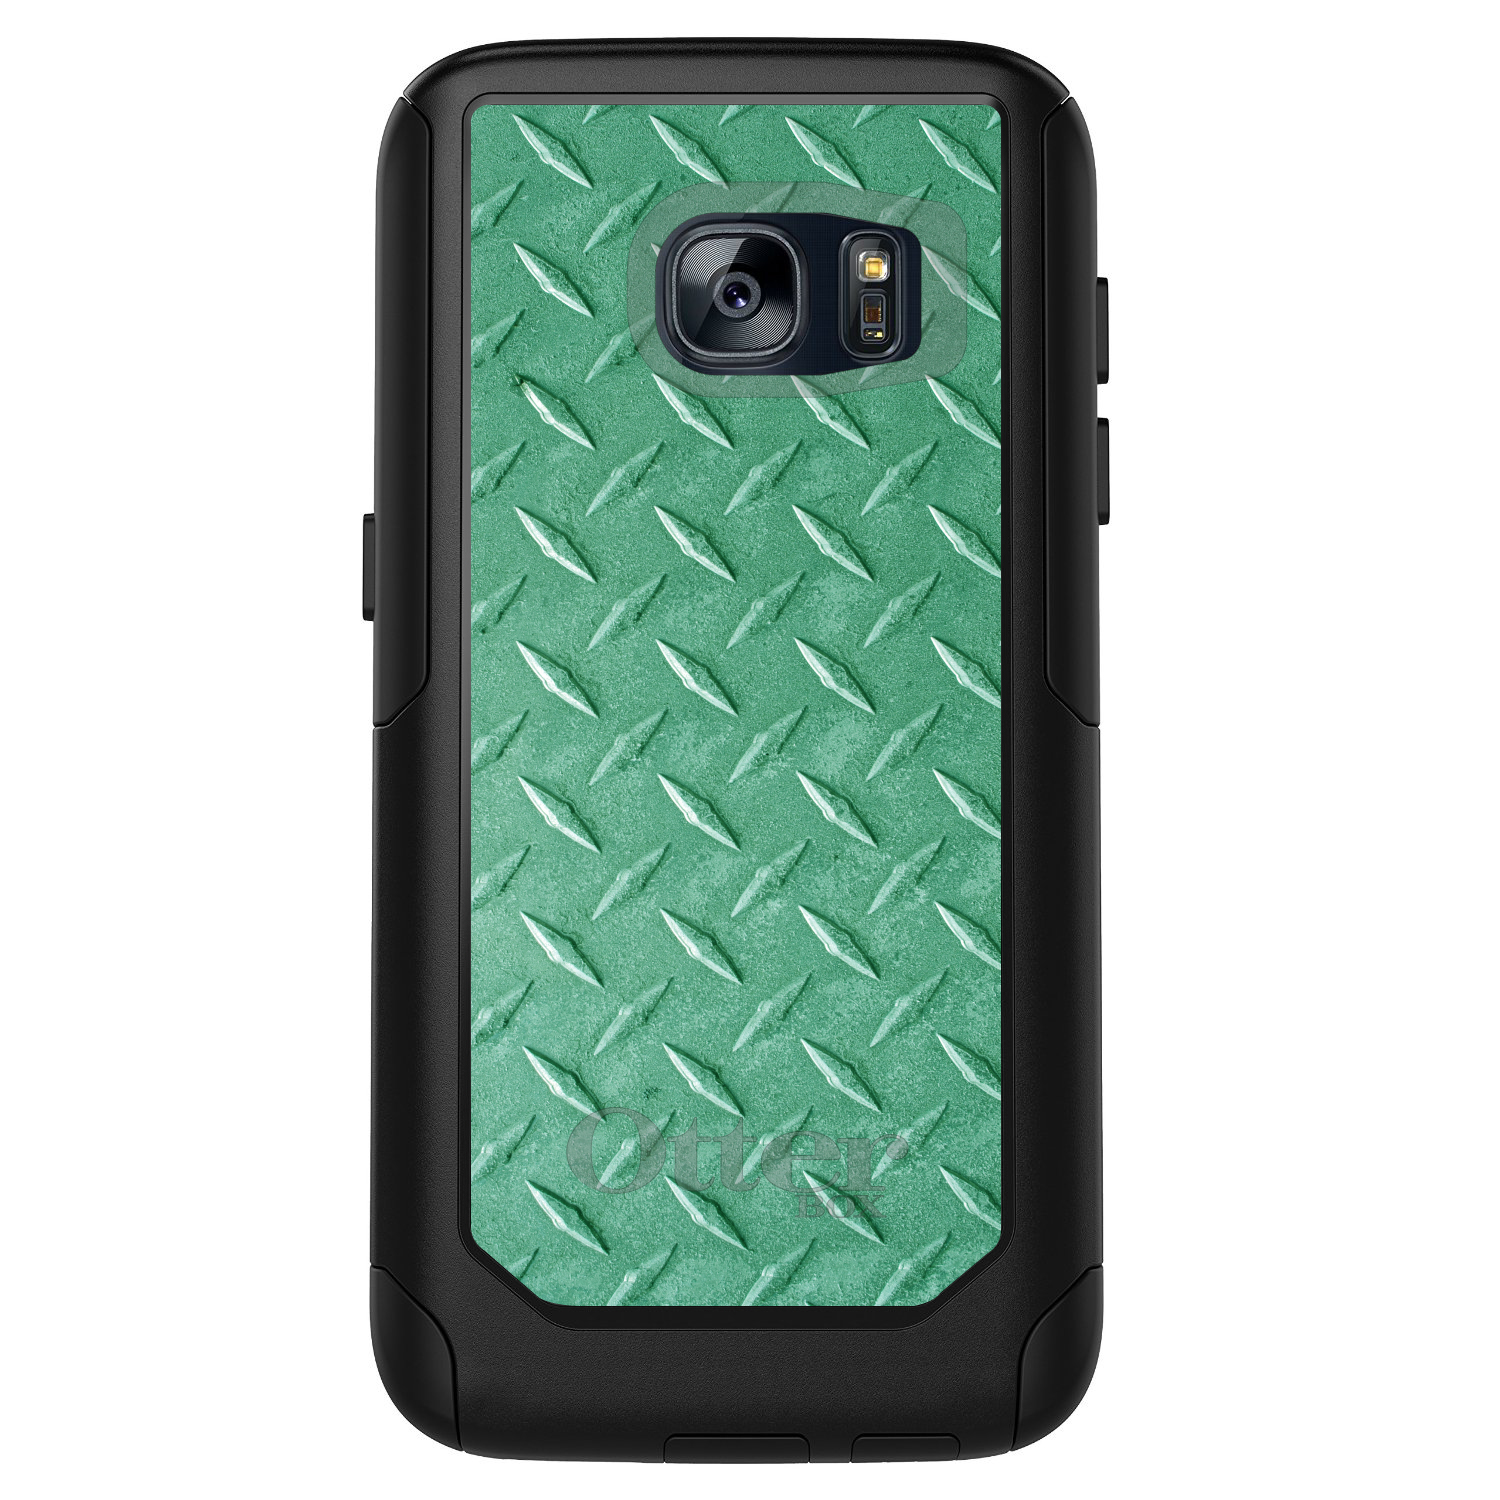 DistinctInk™ Custom Black OtterBox Commuter Series Case for Samsung Galaxy S7 - Green Diamond Plate Steel Print